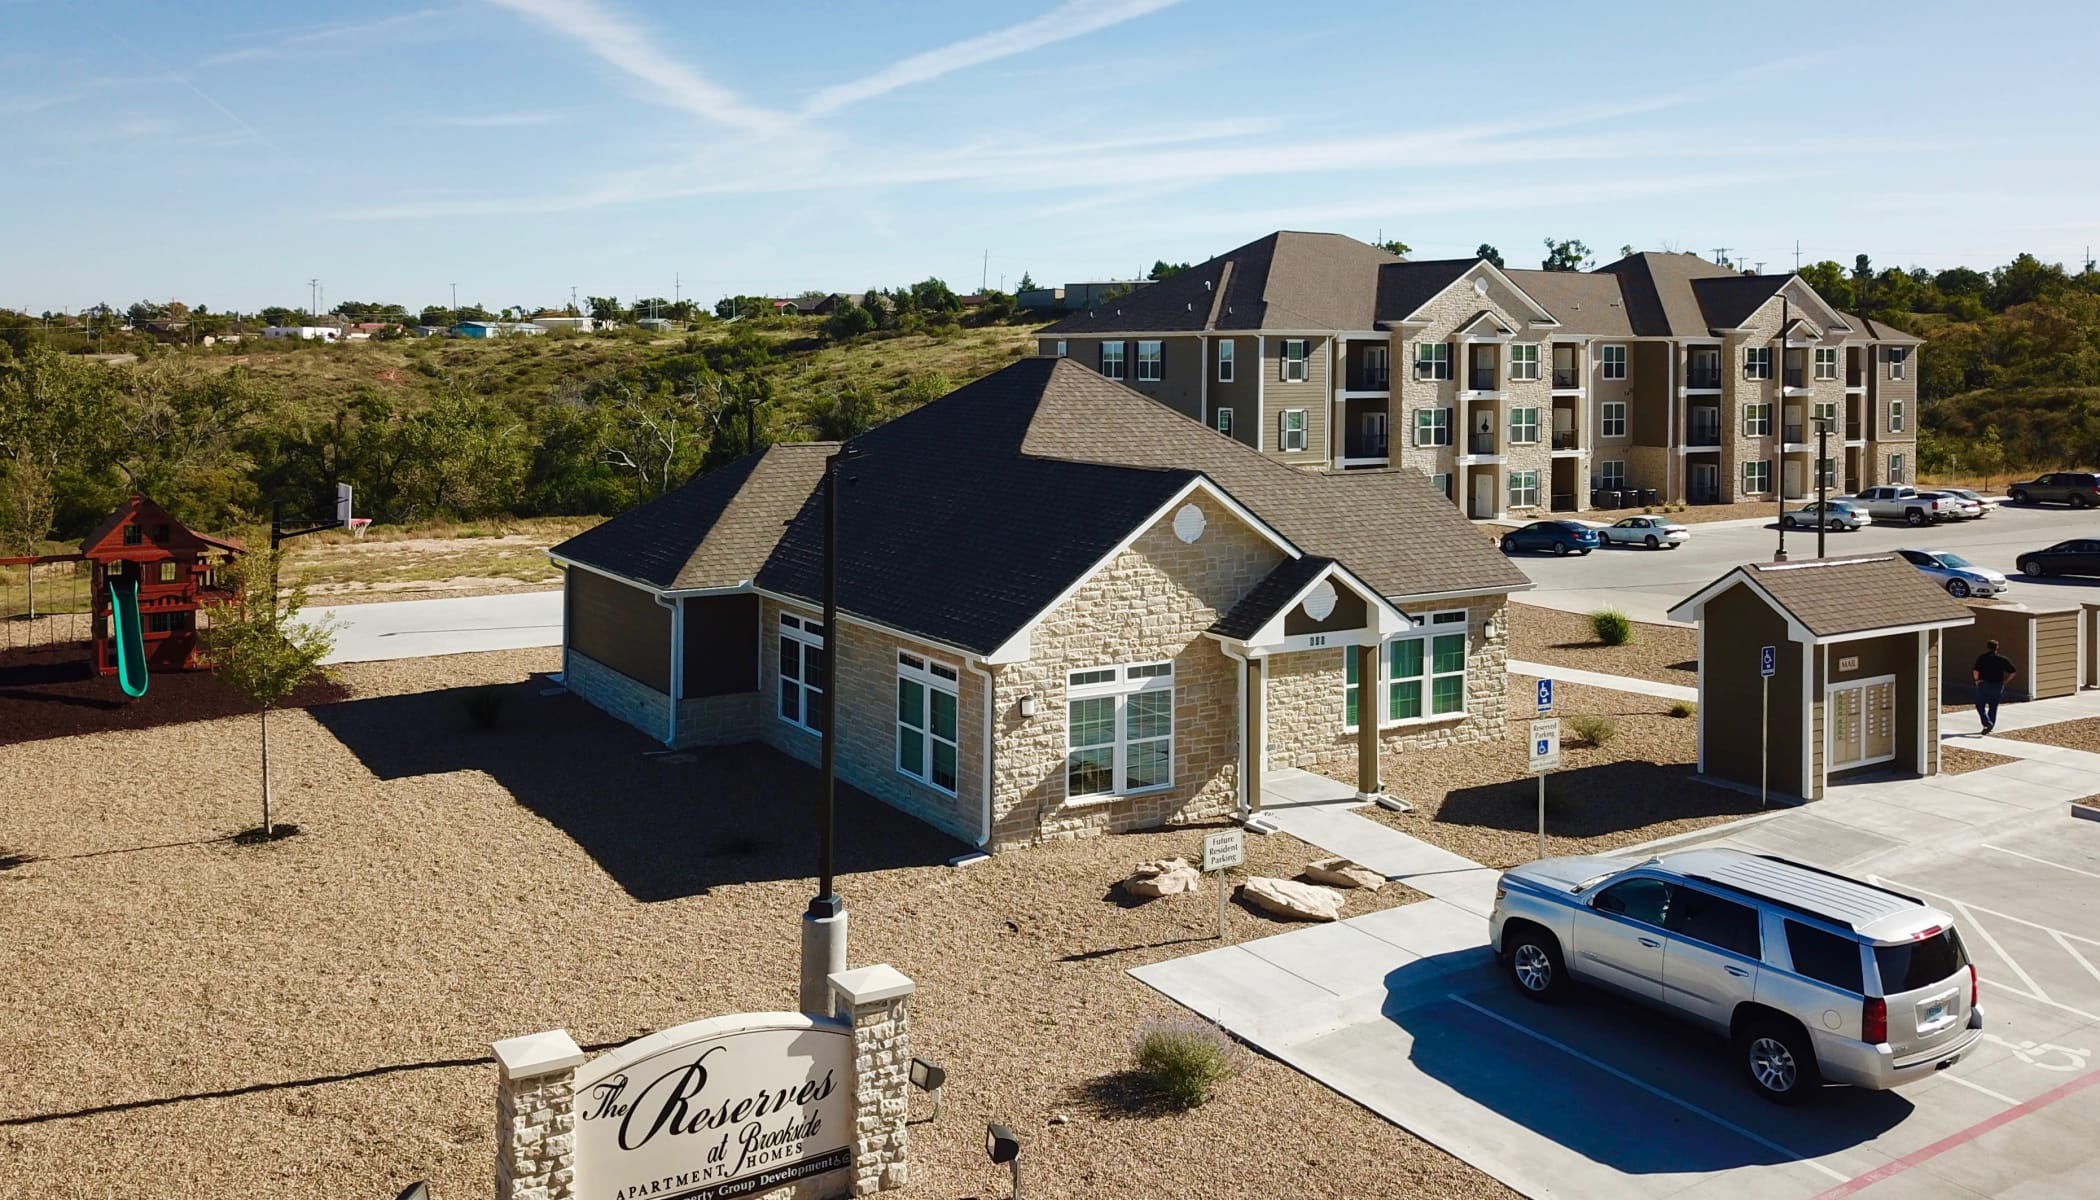 Aerial view of The Reserves at Brookside in Borger, Texas